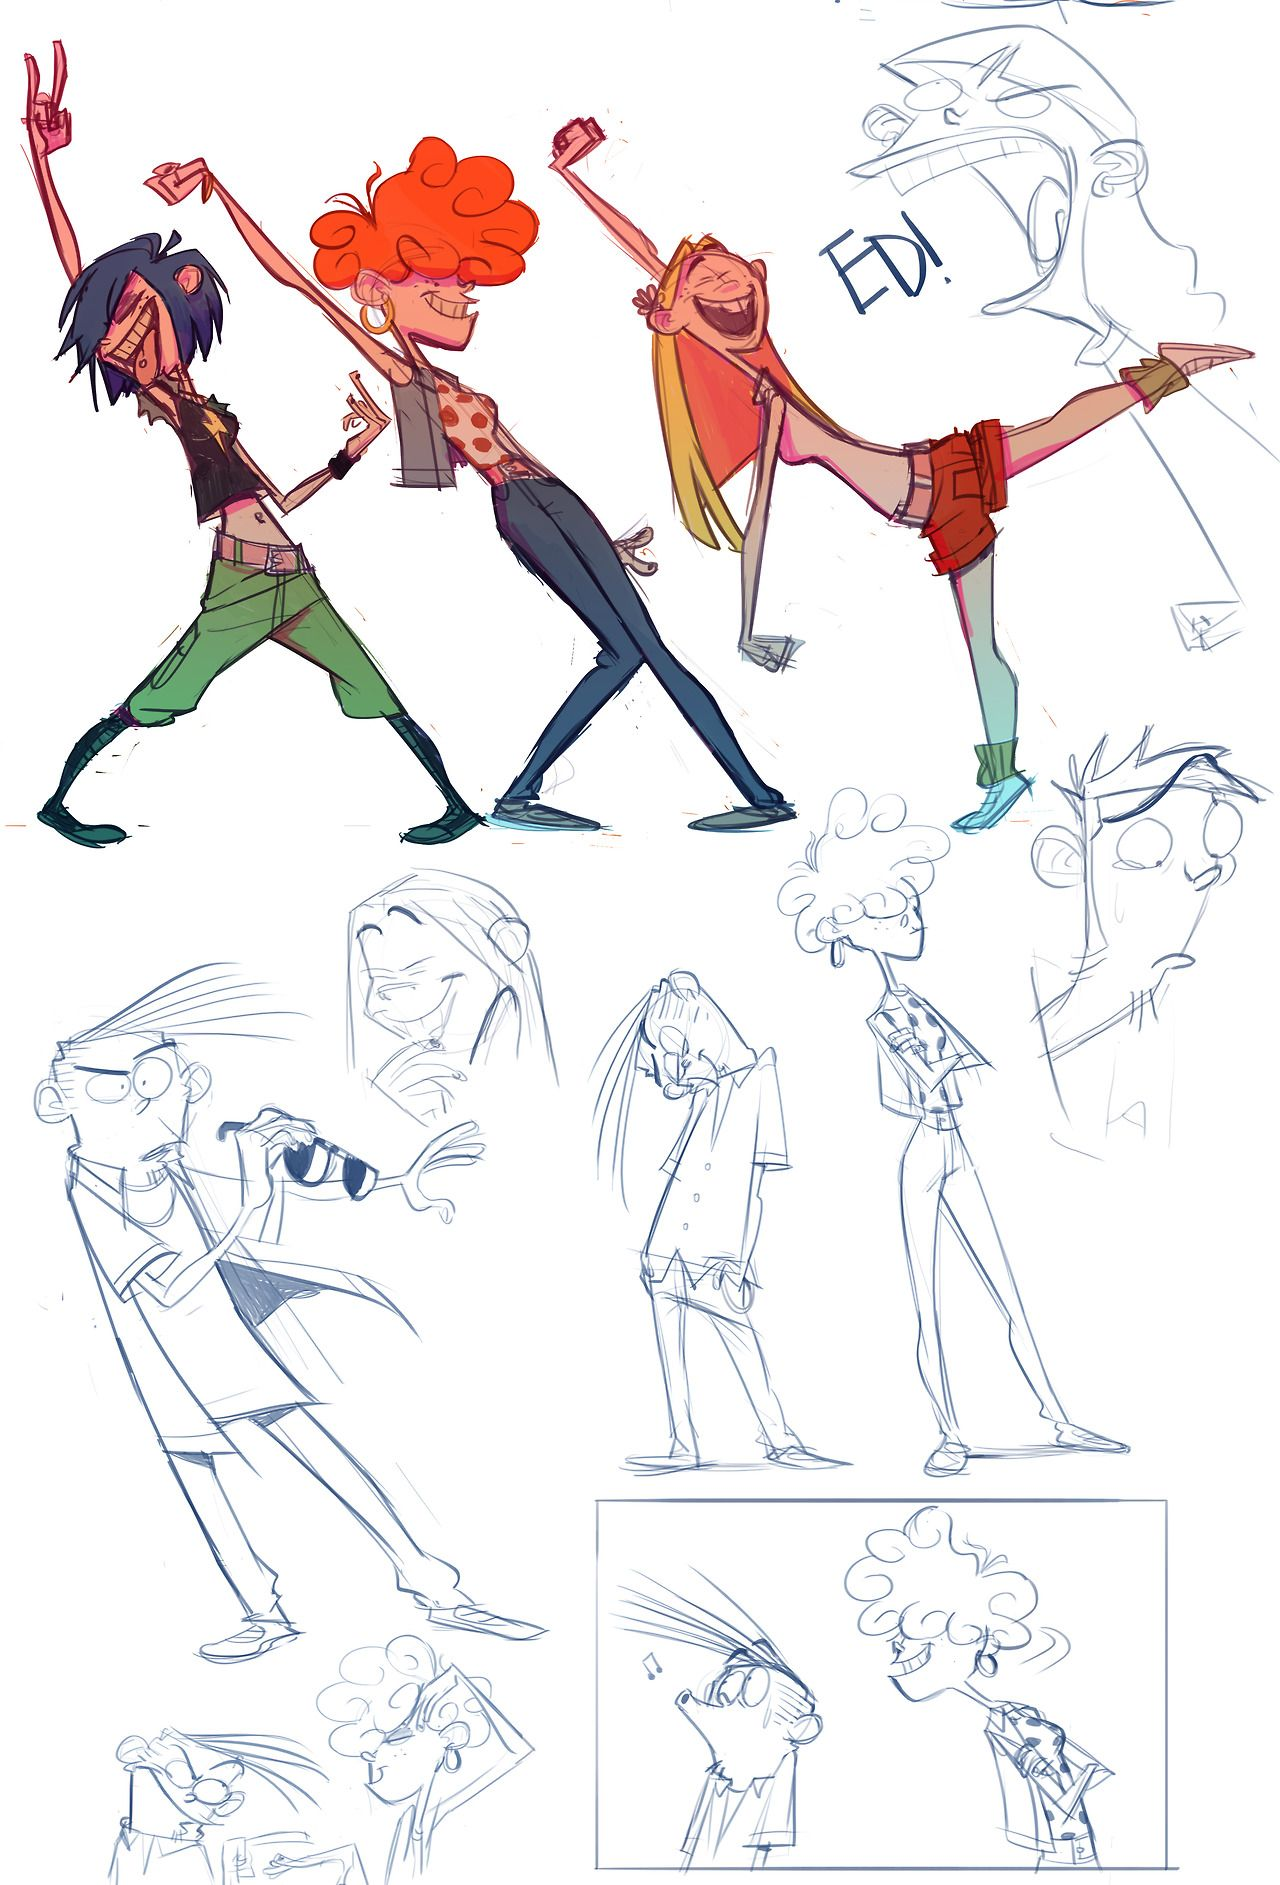 Ed Edd and Eddy ☆ || CHARACTER DESIGN REFERENCES… | art | Pinterest ...